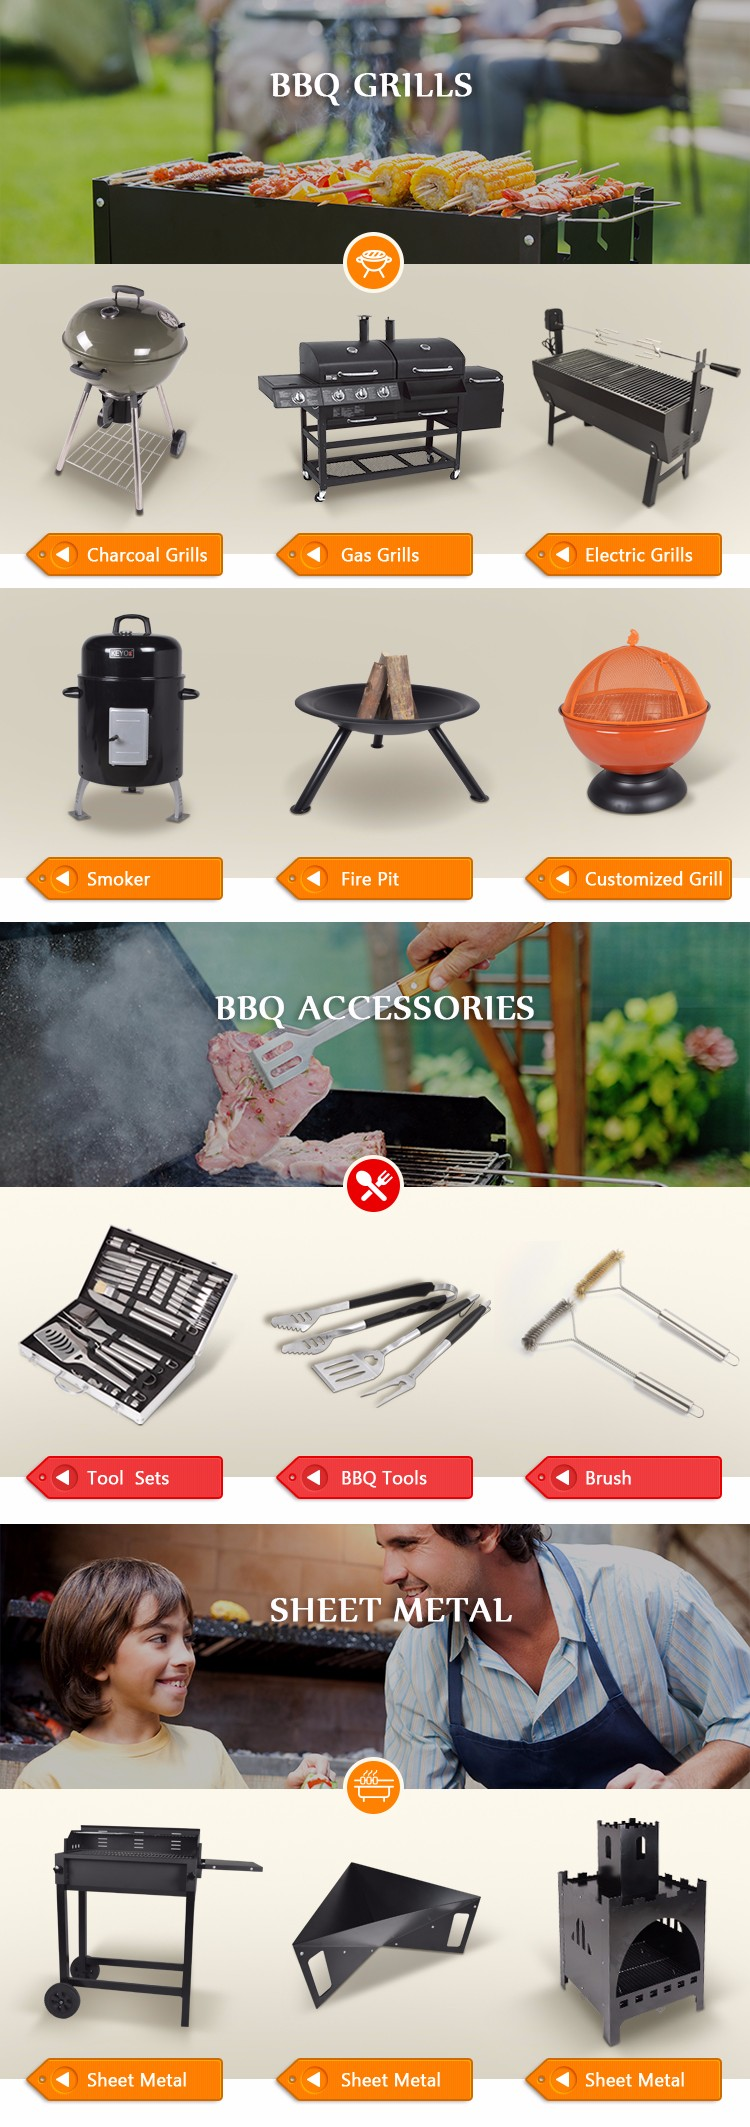 Easily Cleaned Upright Round Barbecue Grills Stand BBQ Charcoal Black Pedestal Round Grill